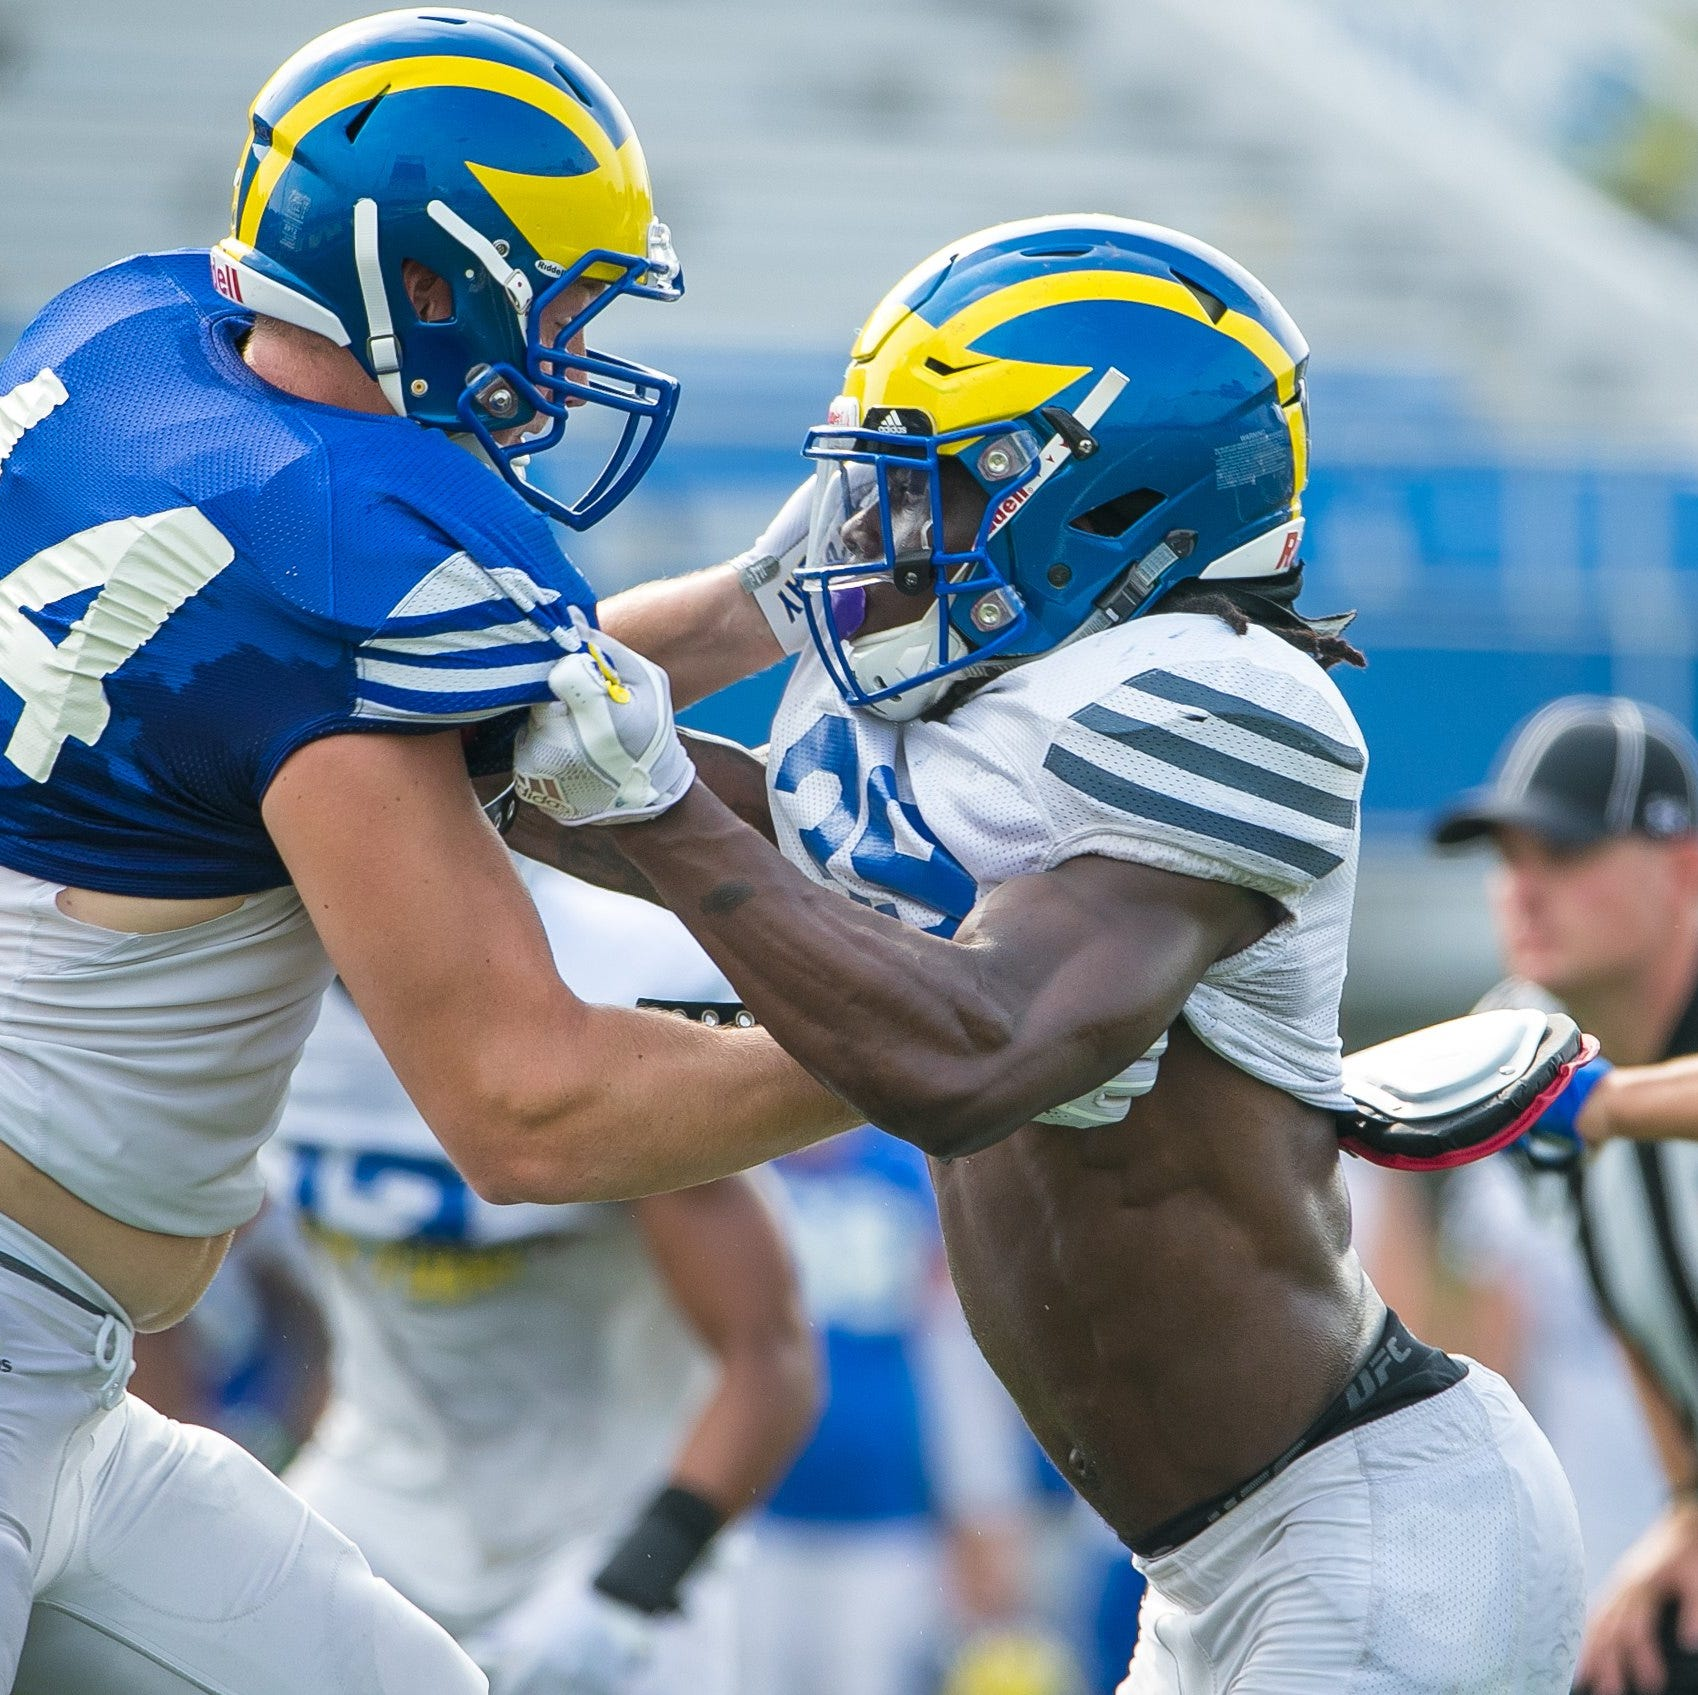 Middletown's Whitehead tops list of Delaware's true freshmen to watch